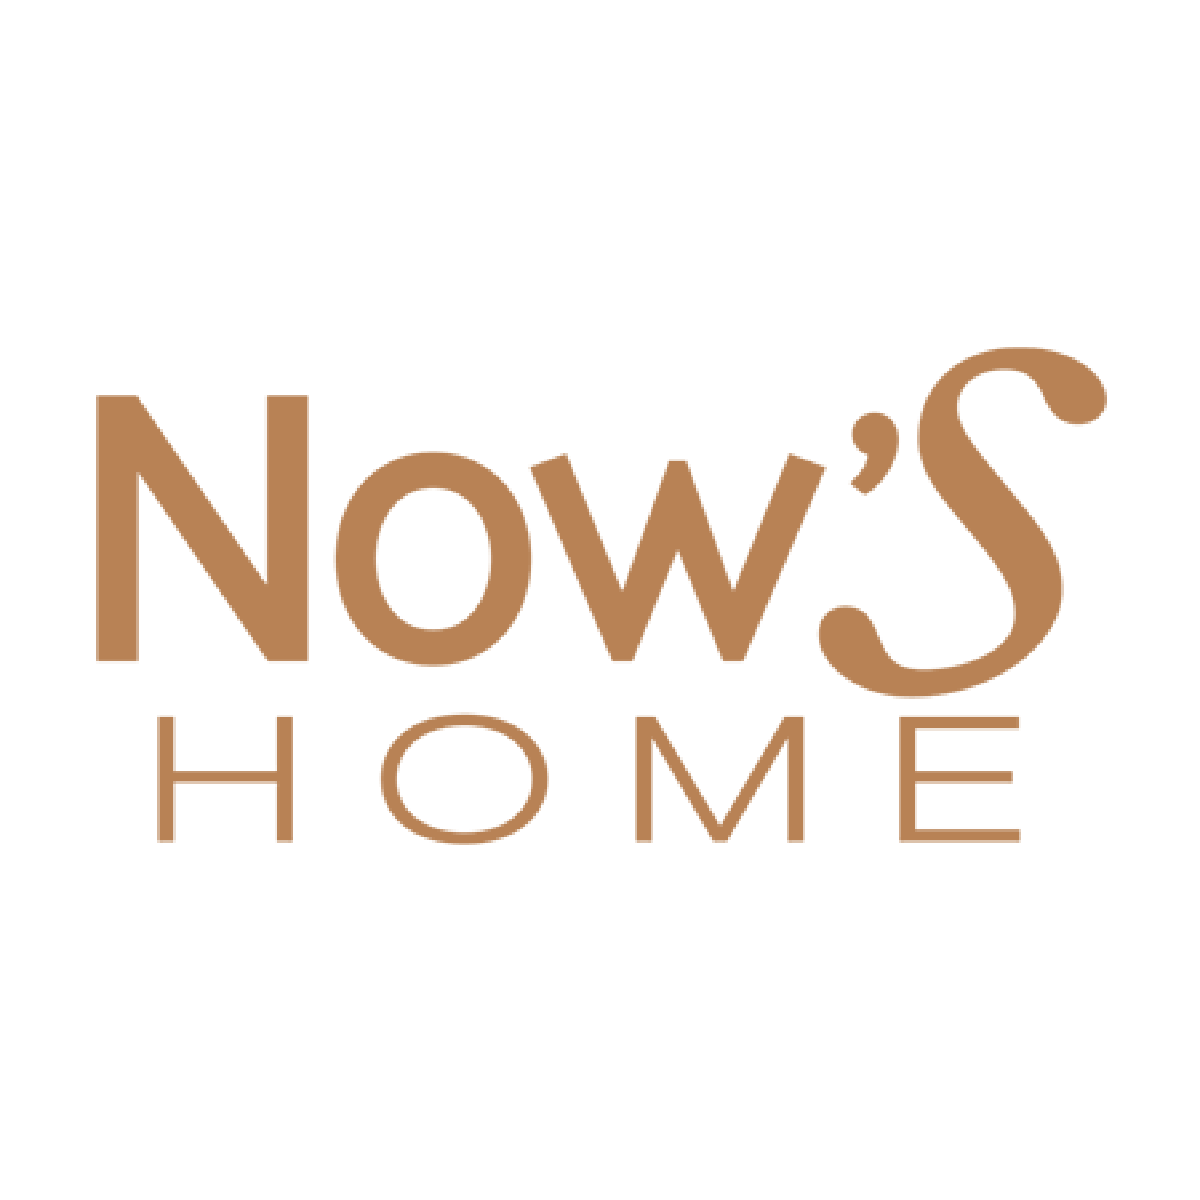 Nows Home